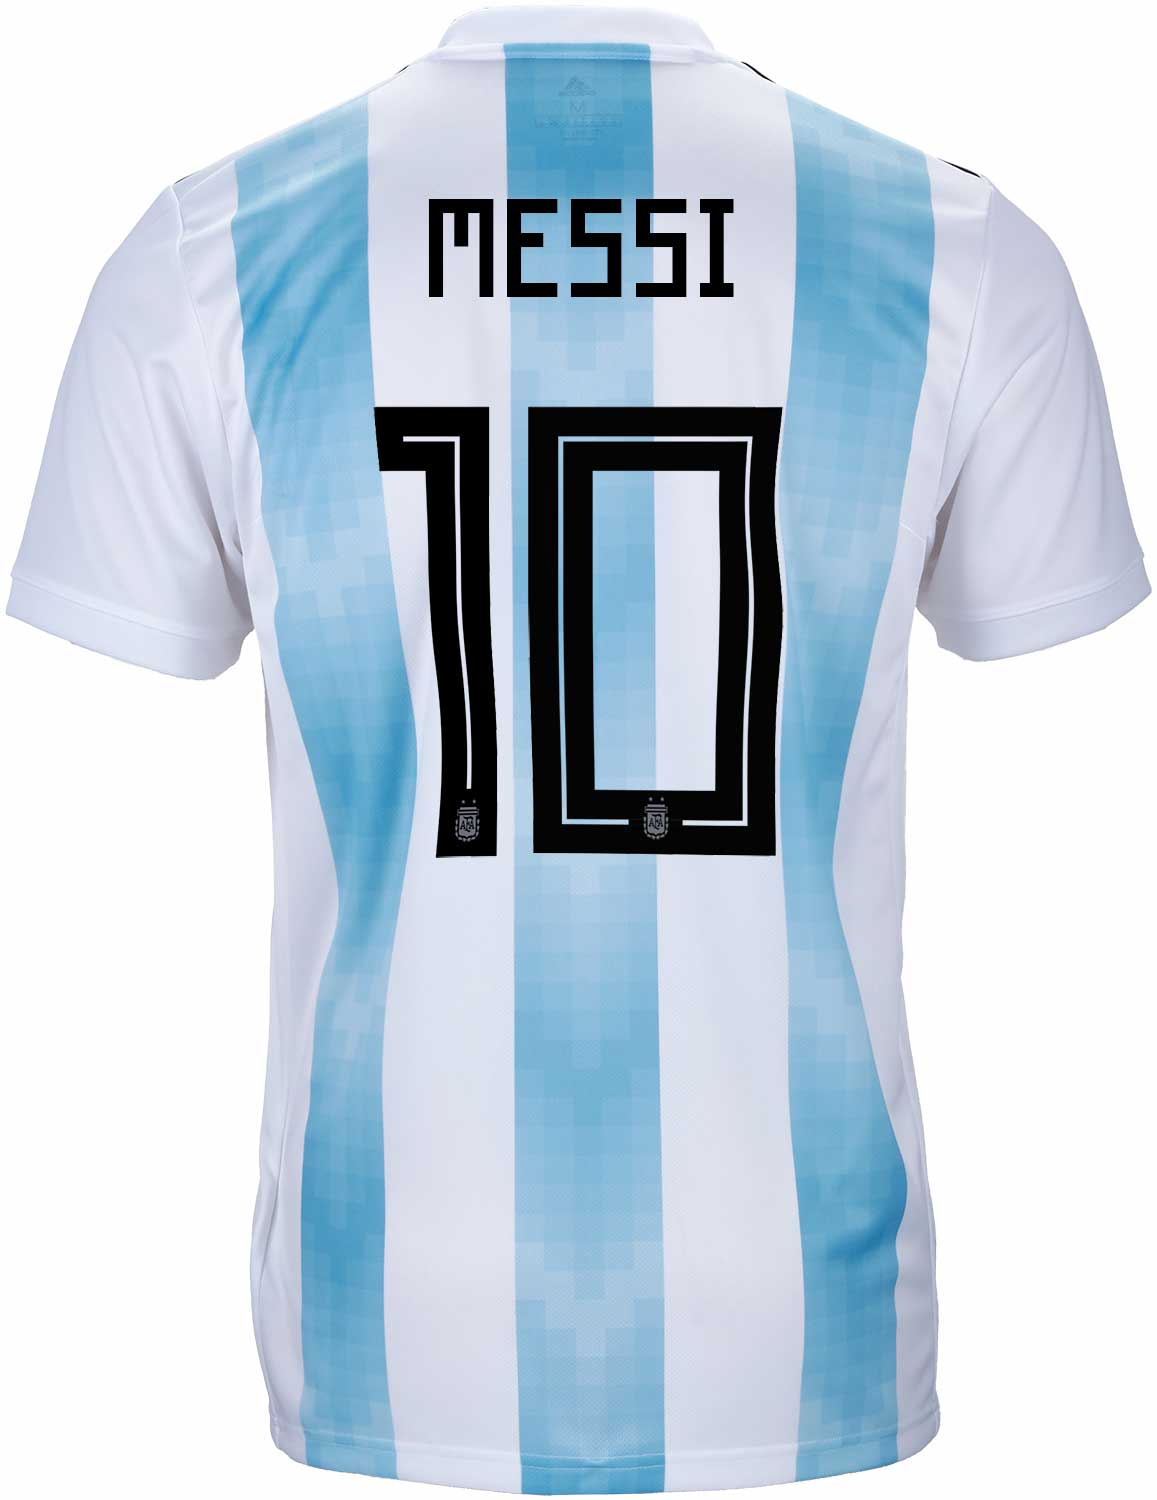 the latest f72b1 44a9b adidas Lionel Messi Argentina Home Jersey 2018-19 - SoccerPro